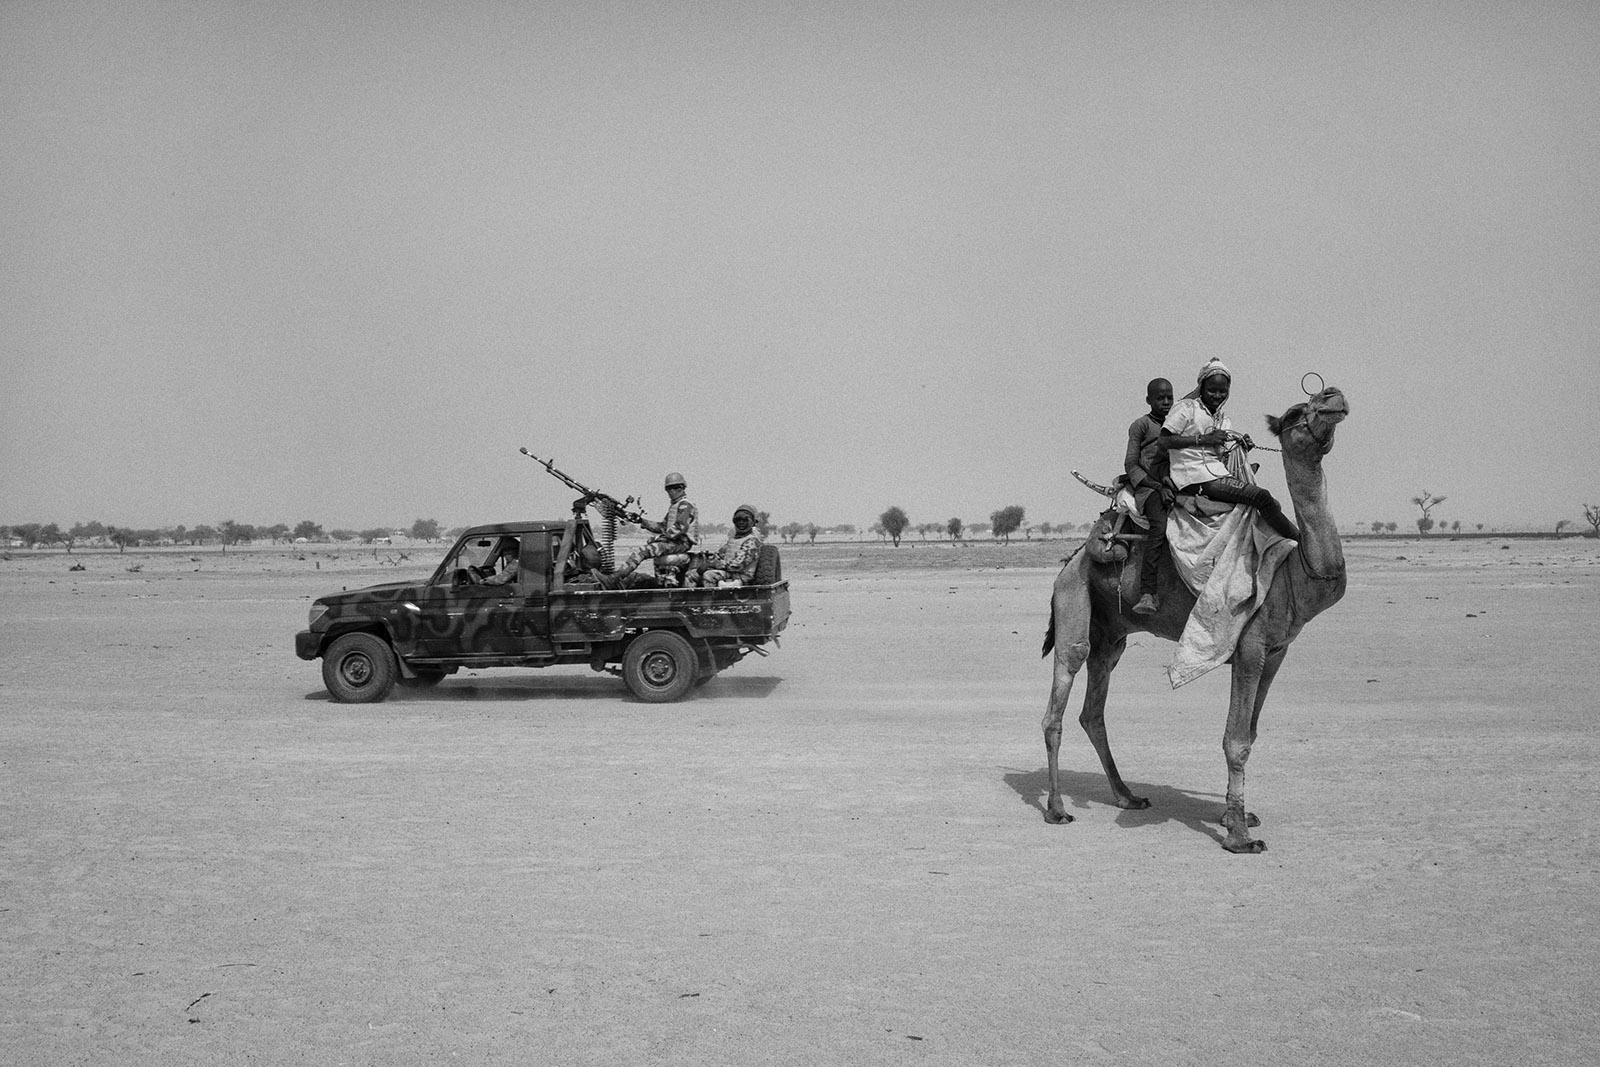 Security forces passing near a refugee camp for Nigeriens displaced by Boko Haram attacks, Niger, 2017